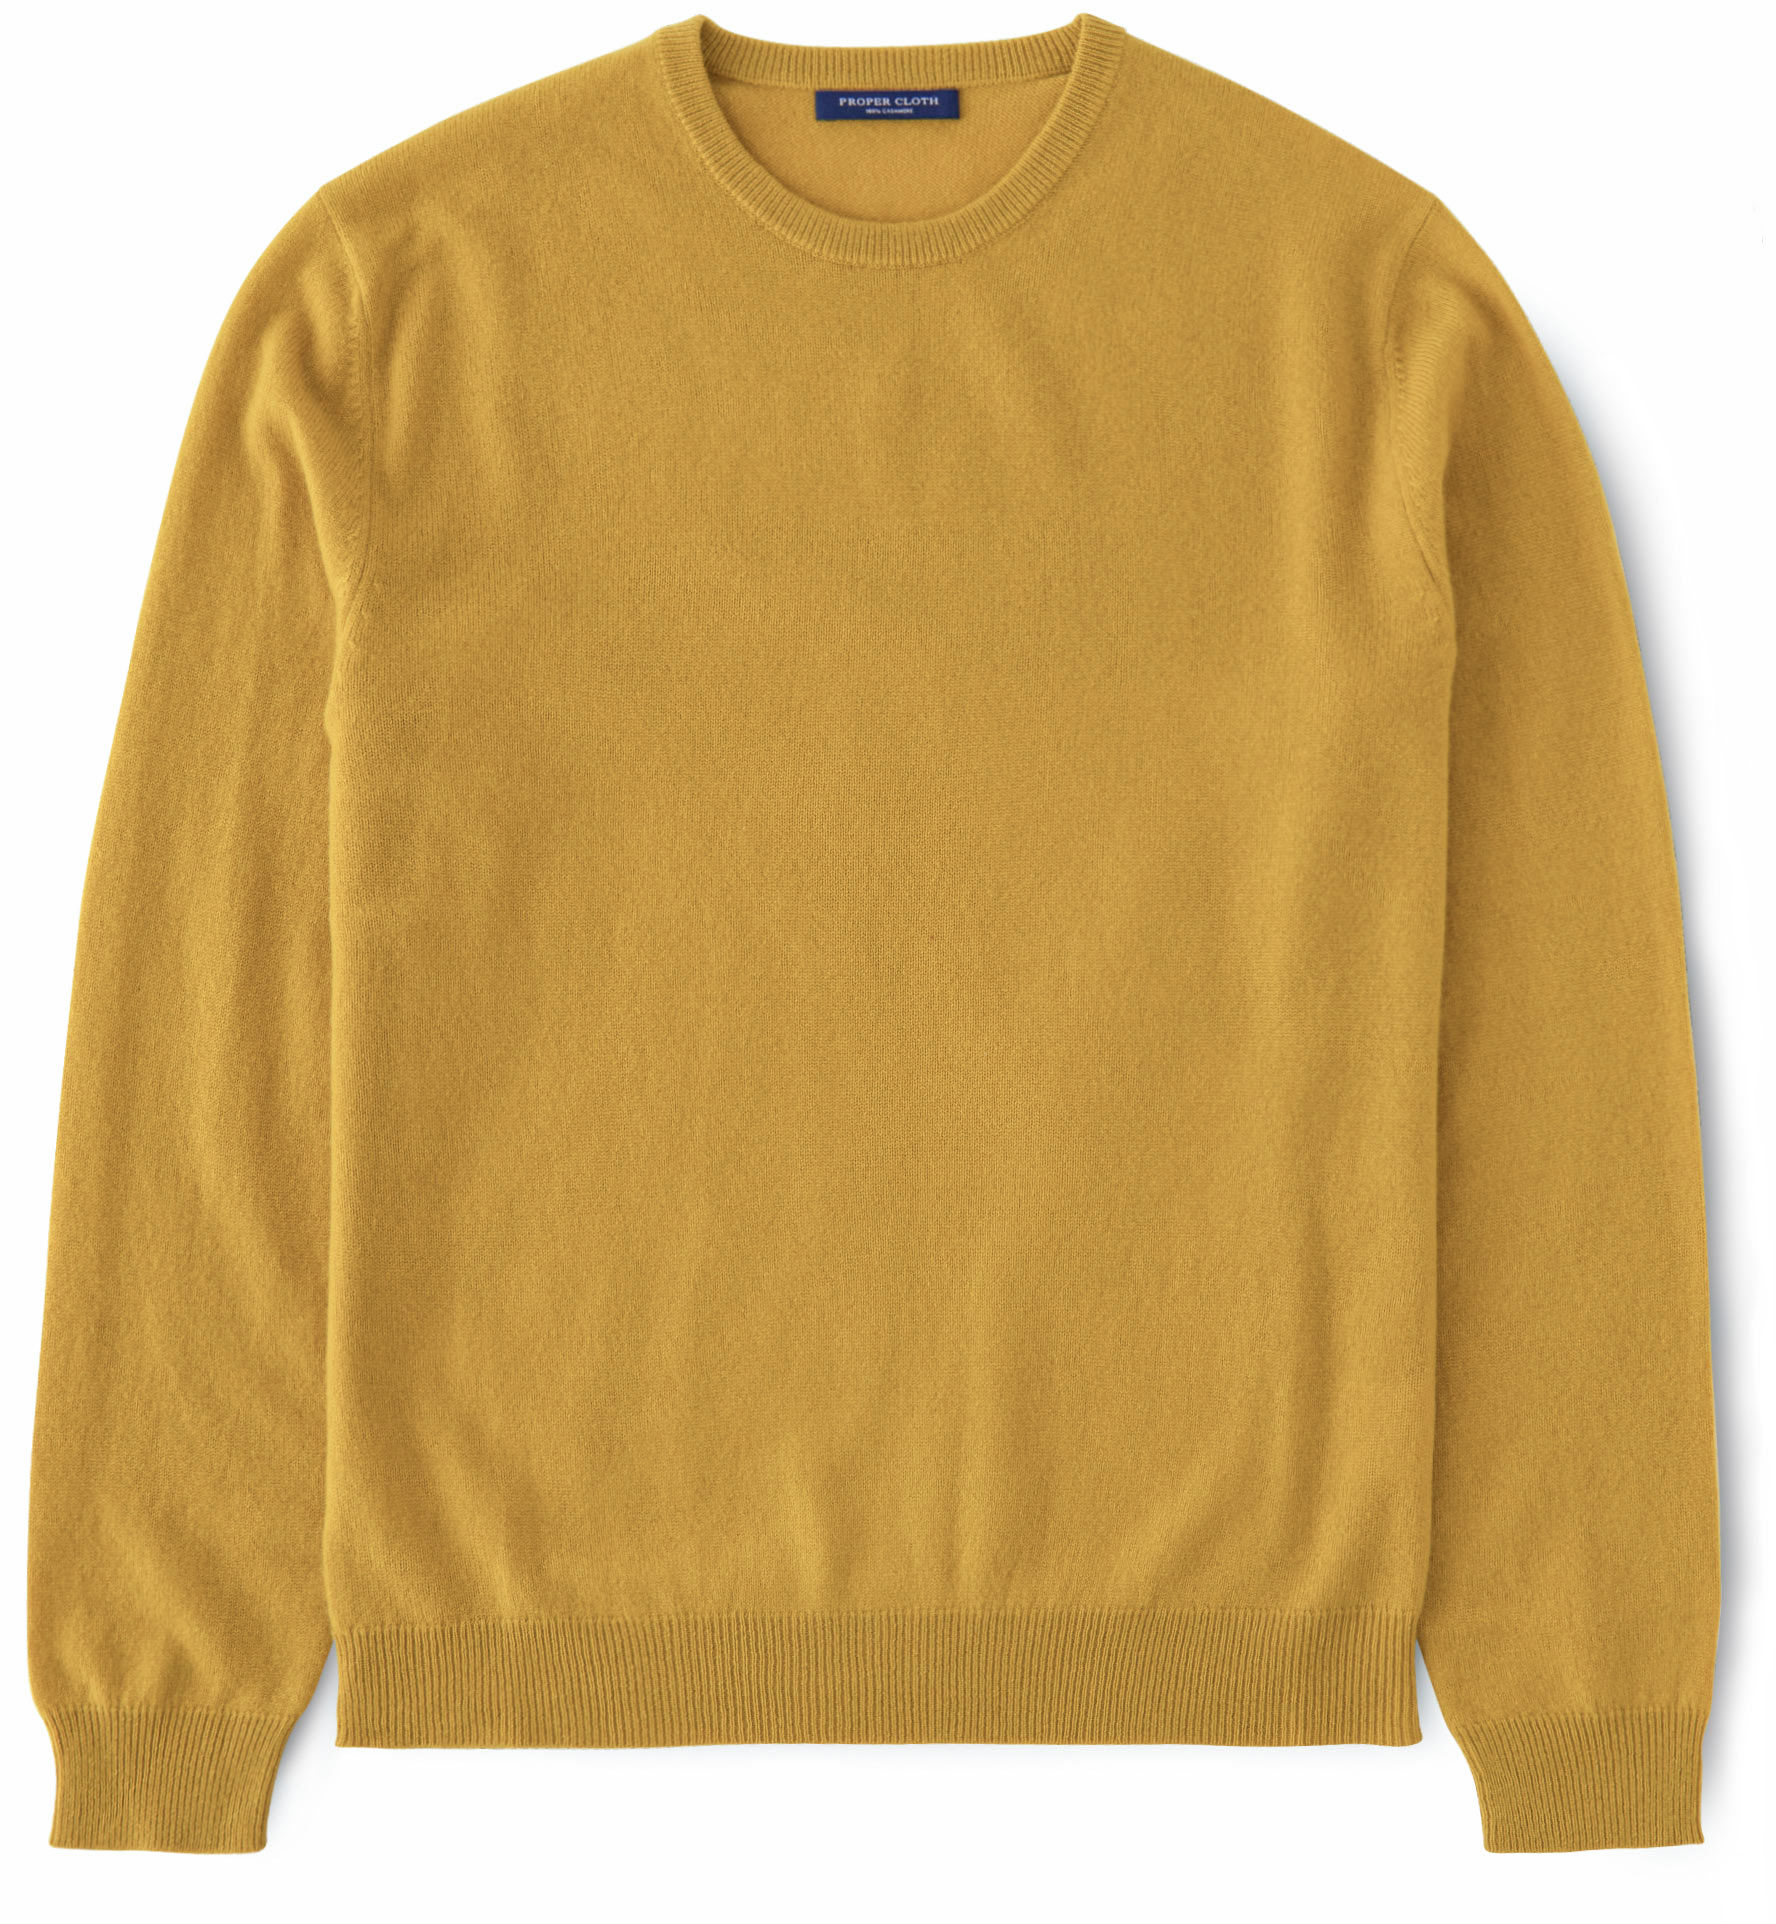 Zoom Image of Goldenrod Cashmere Crewneck